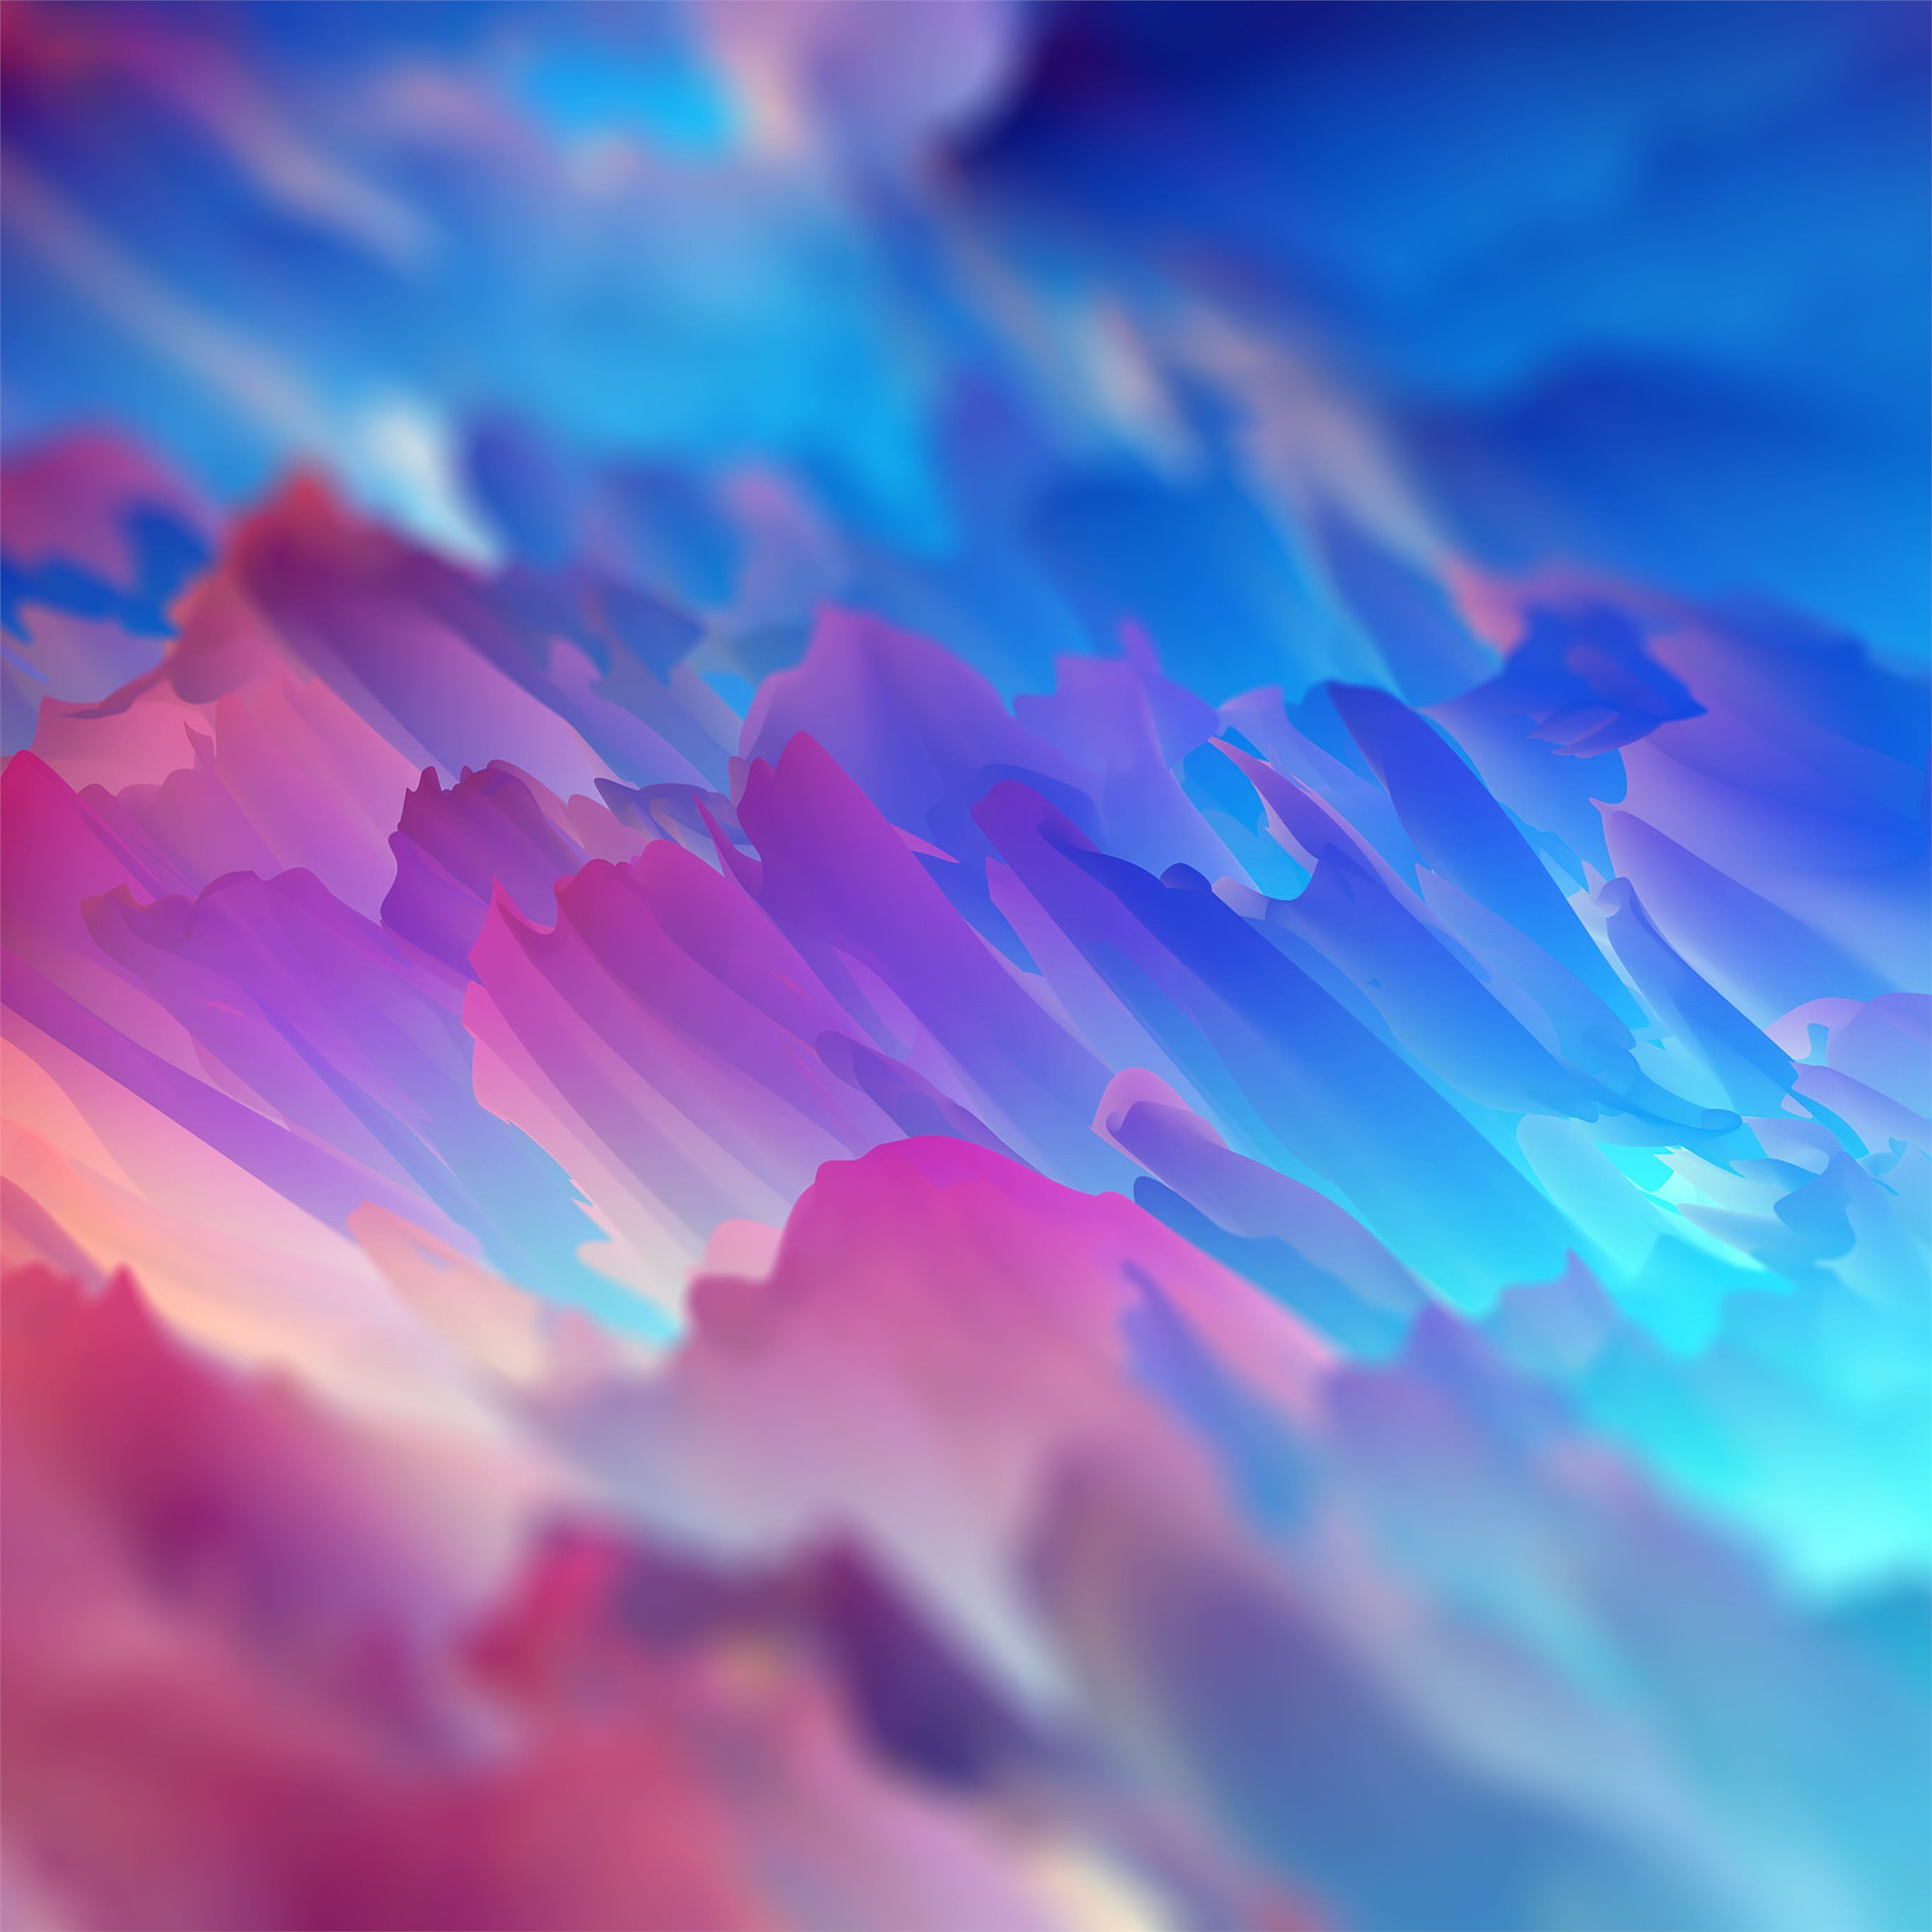 Abstract Colorful Space Colors Art 4k Abstract Colorful Digitalart 4k Deviantart Colorful Art Colorful Space Ipad Pro Wallpaper